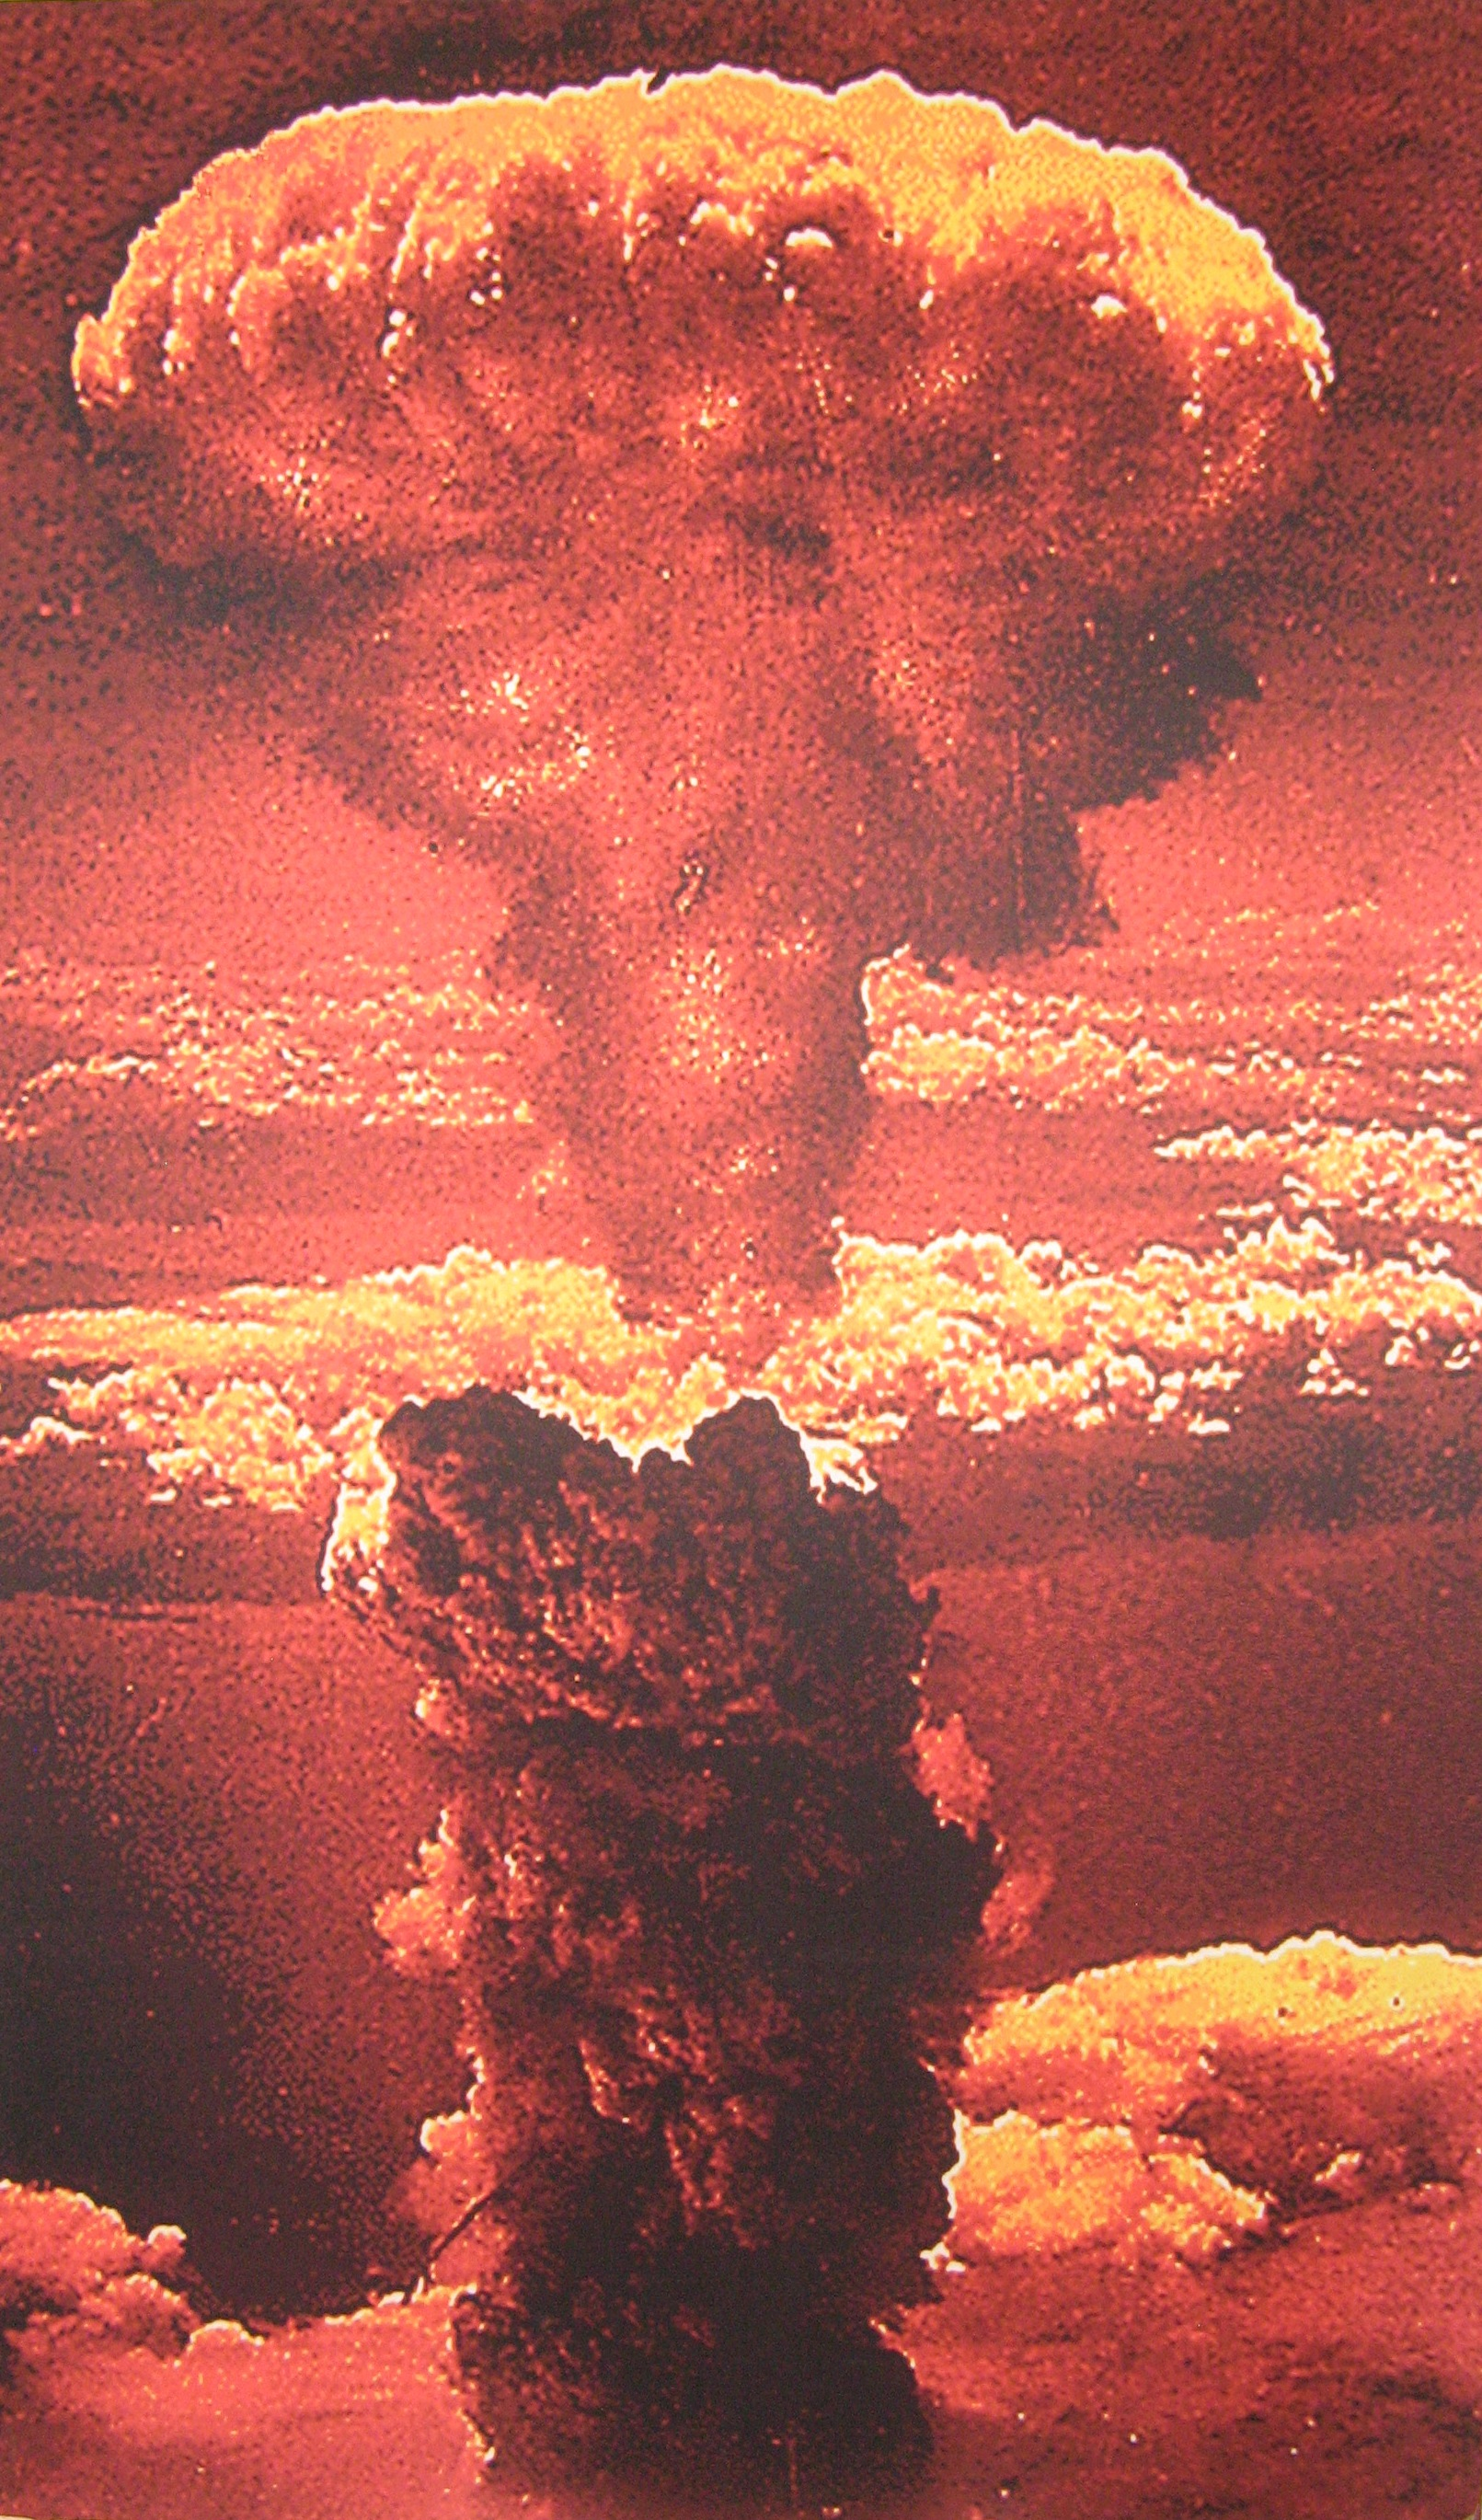 an analysis of the explosion of the atomic bomb in hiroshima by united states The united states detonated two atomic bombs over the japanese cities of  hiroshima and  the intense brightness of the explosion's flash was followed by  the rise of a large  was the bombing of hiroshima and nagasaki necessary.